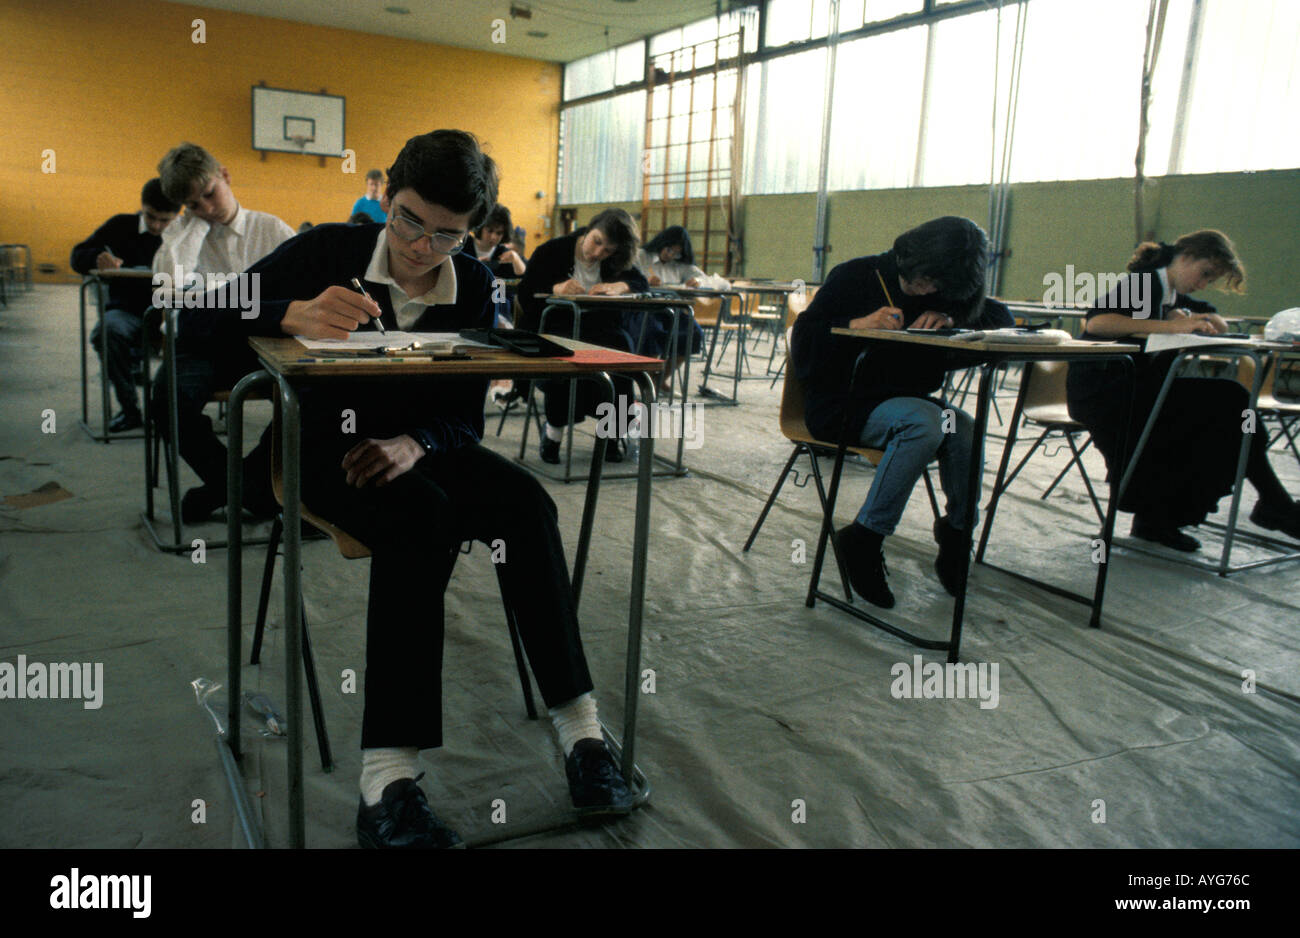 GCSE exams - Stock Image